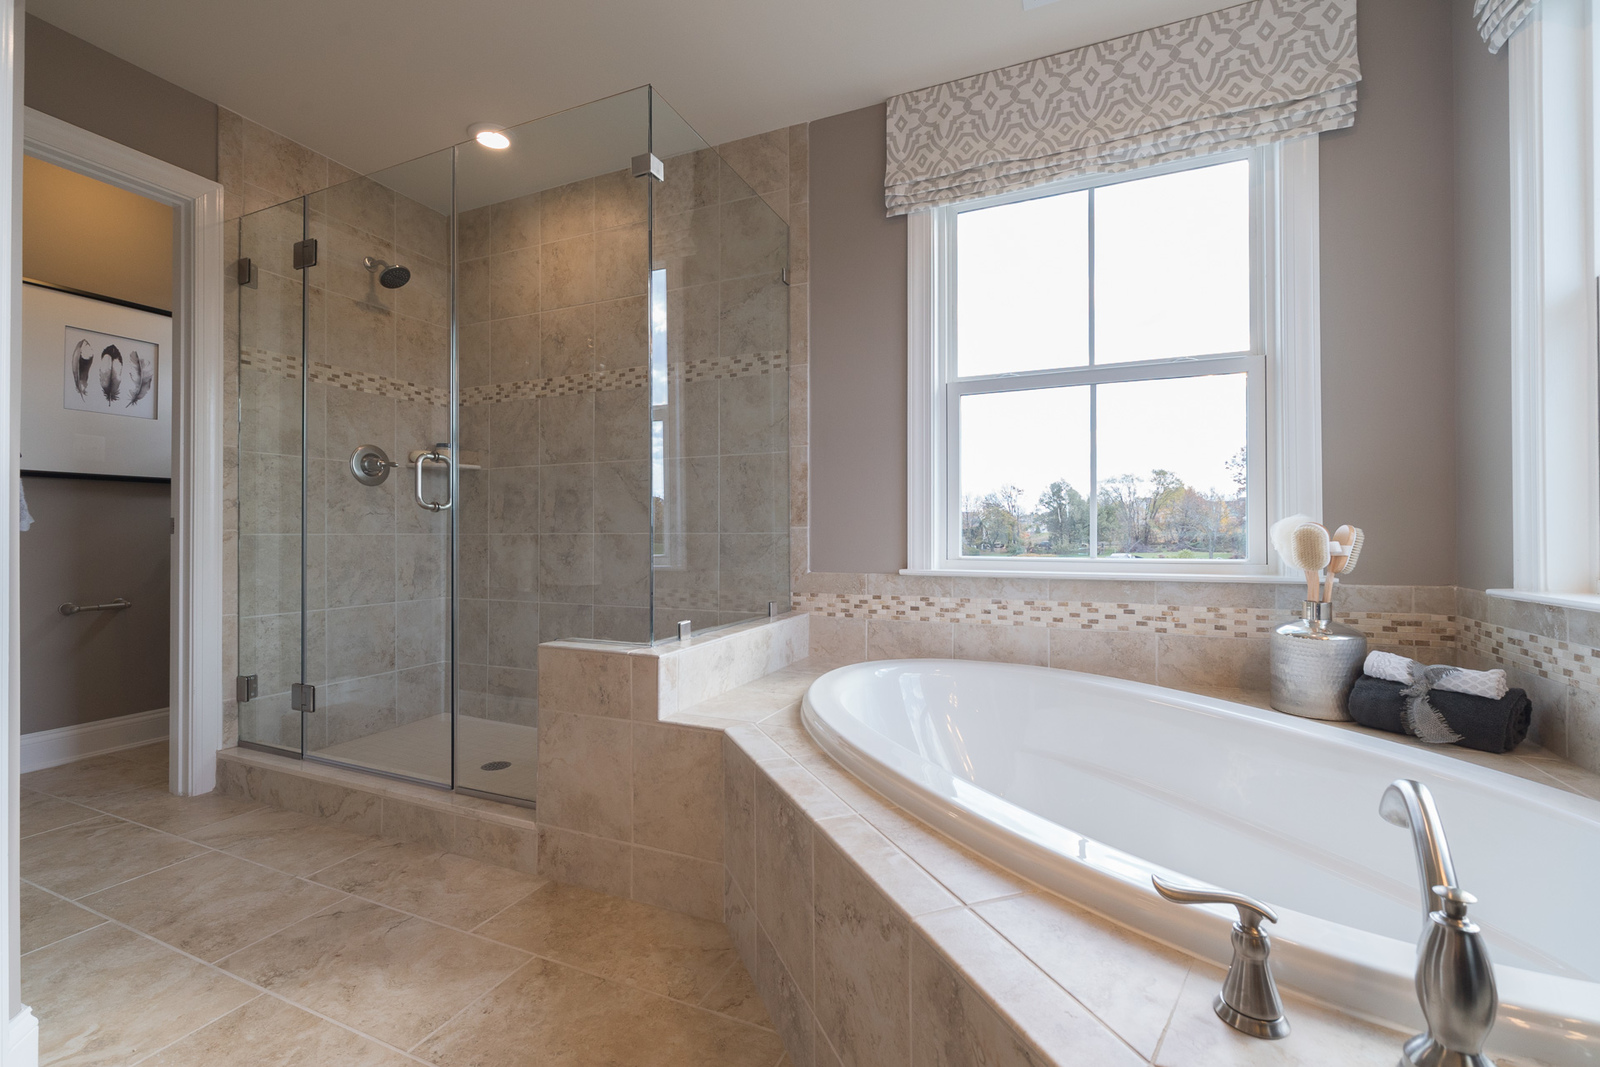 Don't settle. Have a shower and tub in your owner's suite bathroom.